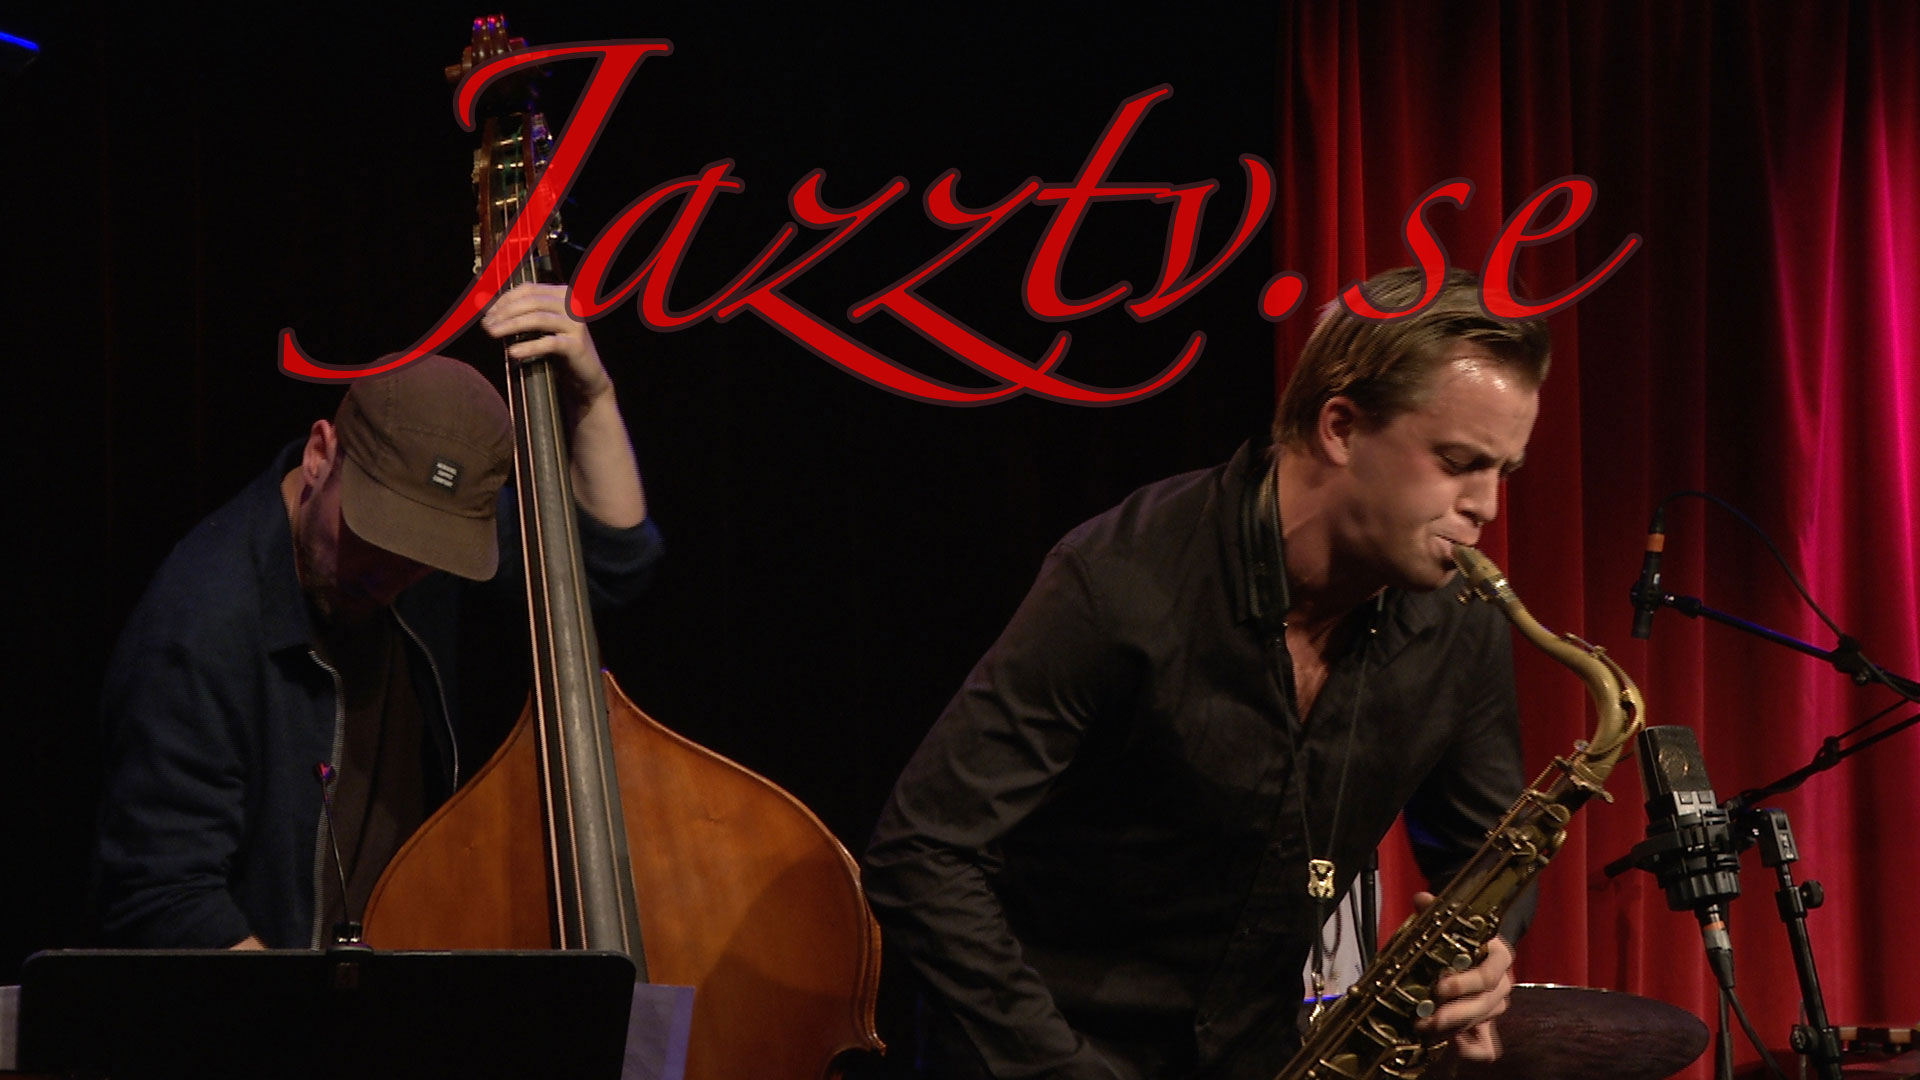 Jazztv.se - your jazz channel on the web